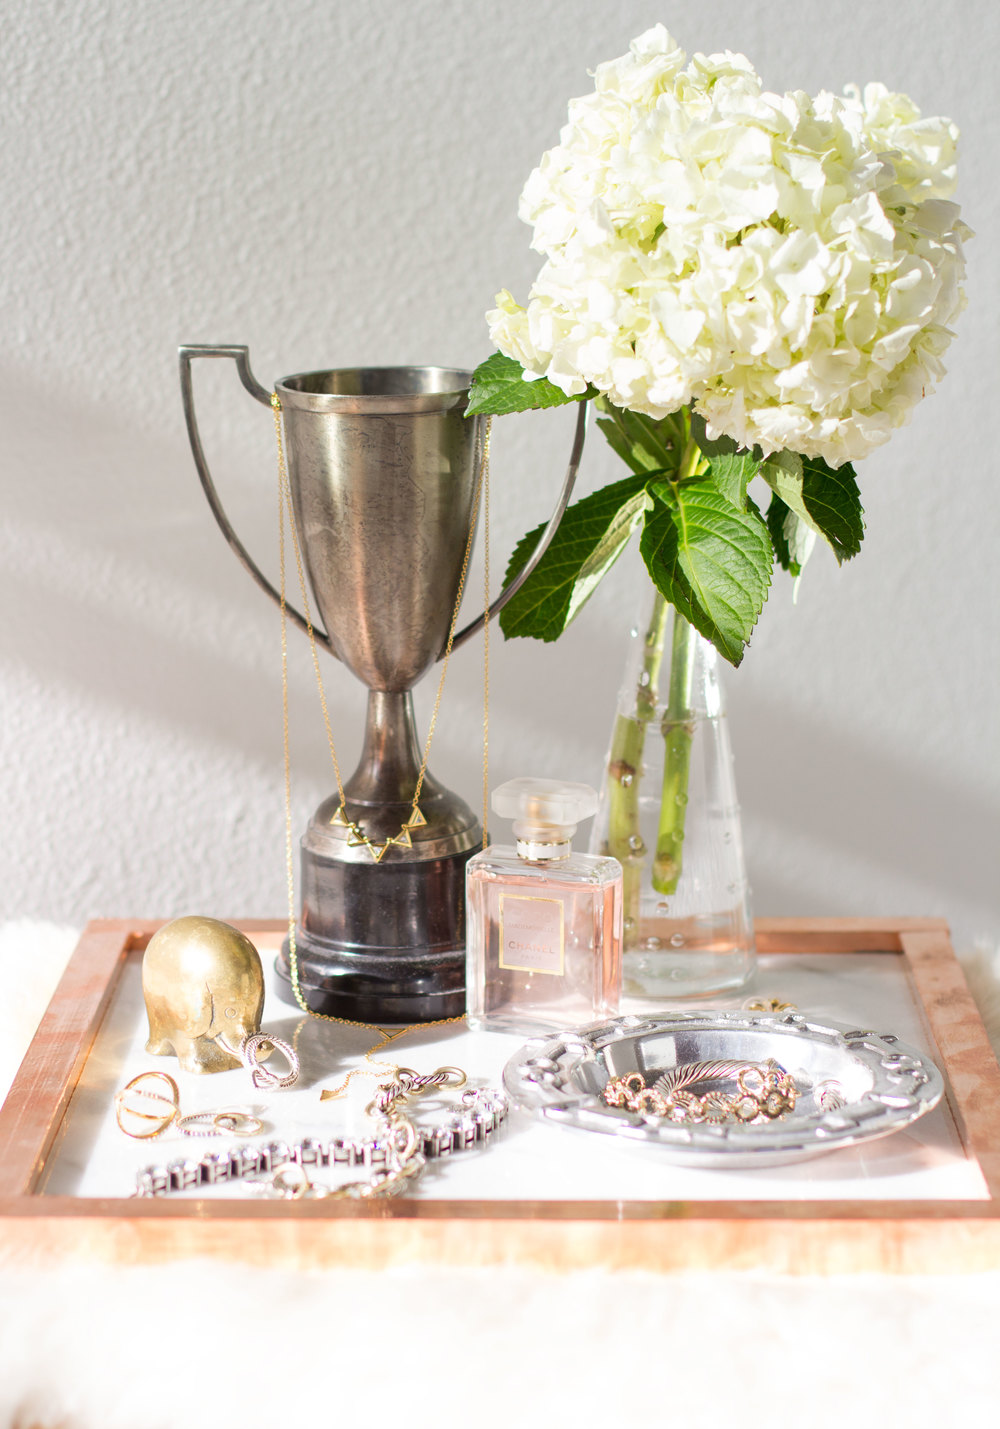 DIY FOR LESS MARBLE JEWELRY TRAY Me and Mr Jones